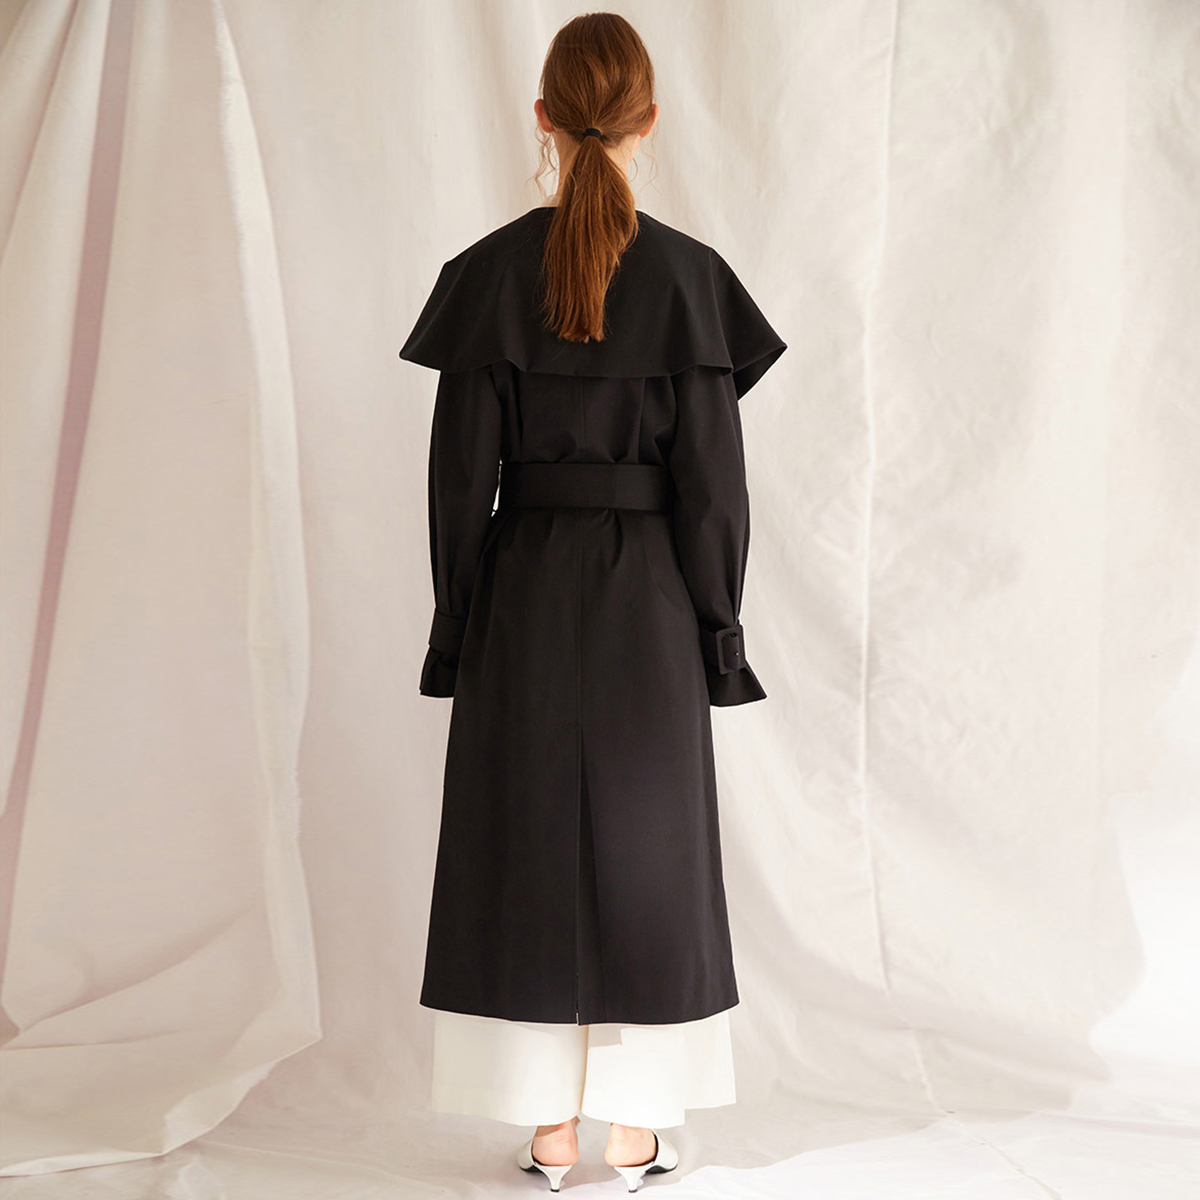 HYH haoyihui Simple Girl Sweet Big Lotus Leaf Collar Belt With Cuffs Solid Color Double Breasted Trench Coat in Trench from Women 39 s Clothing